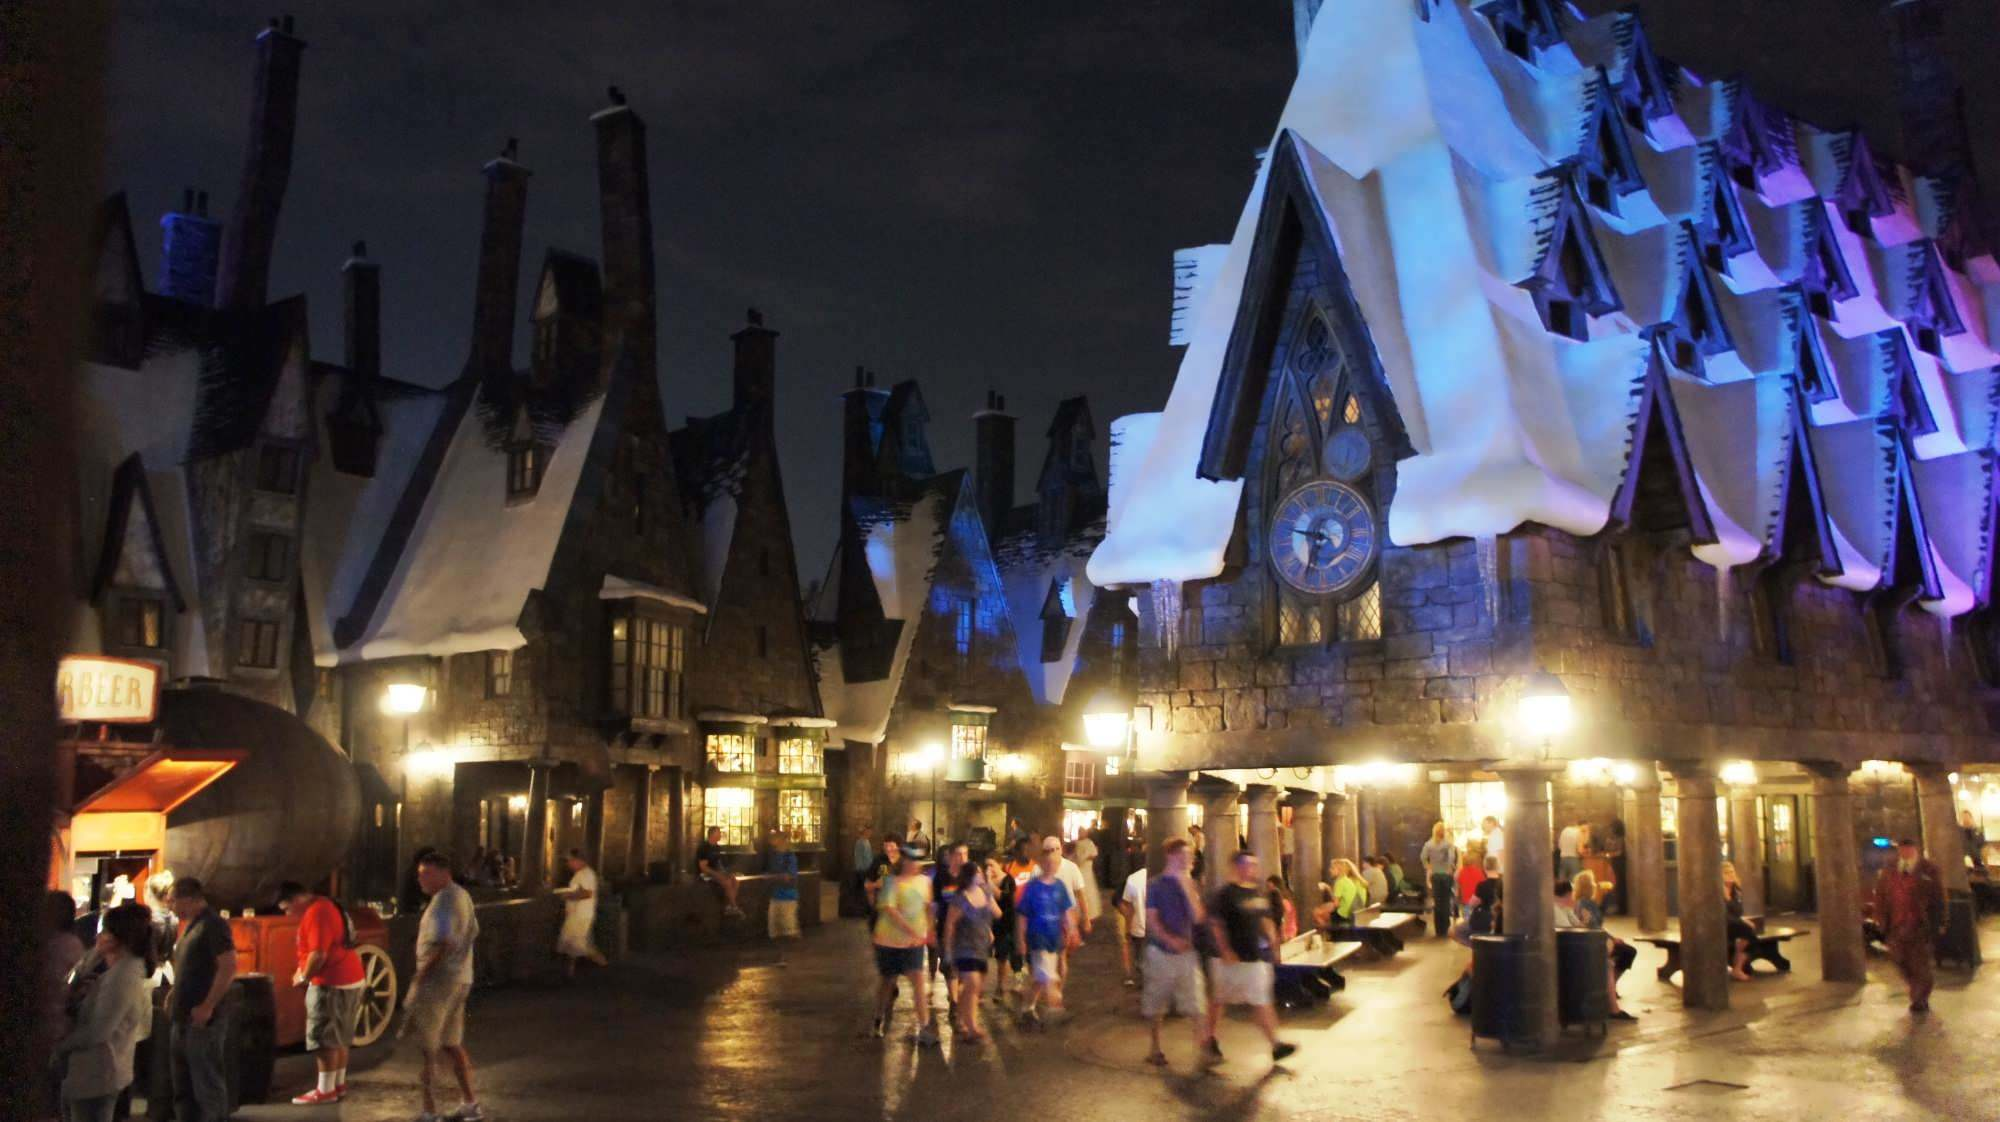 adba78b415e FREE Wizarding World of Harry Potter touring plan - accurate   up-to-date